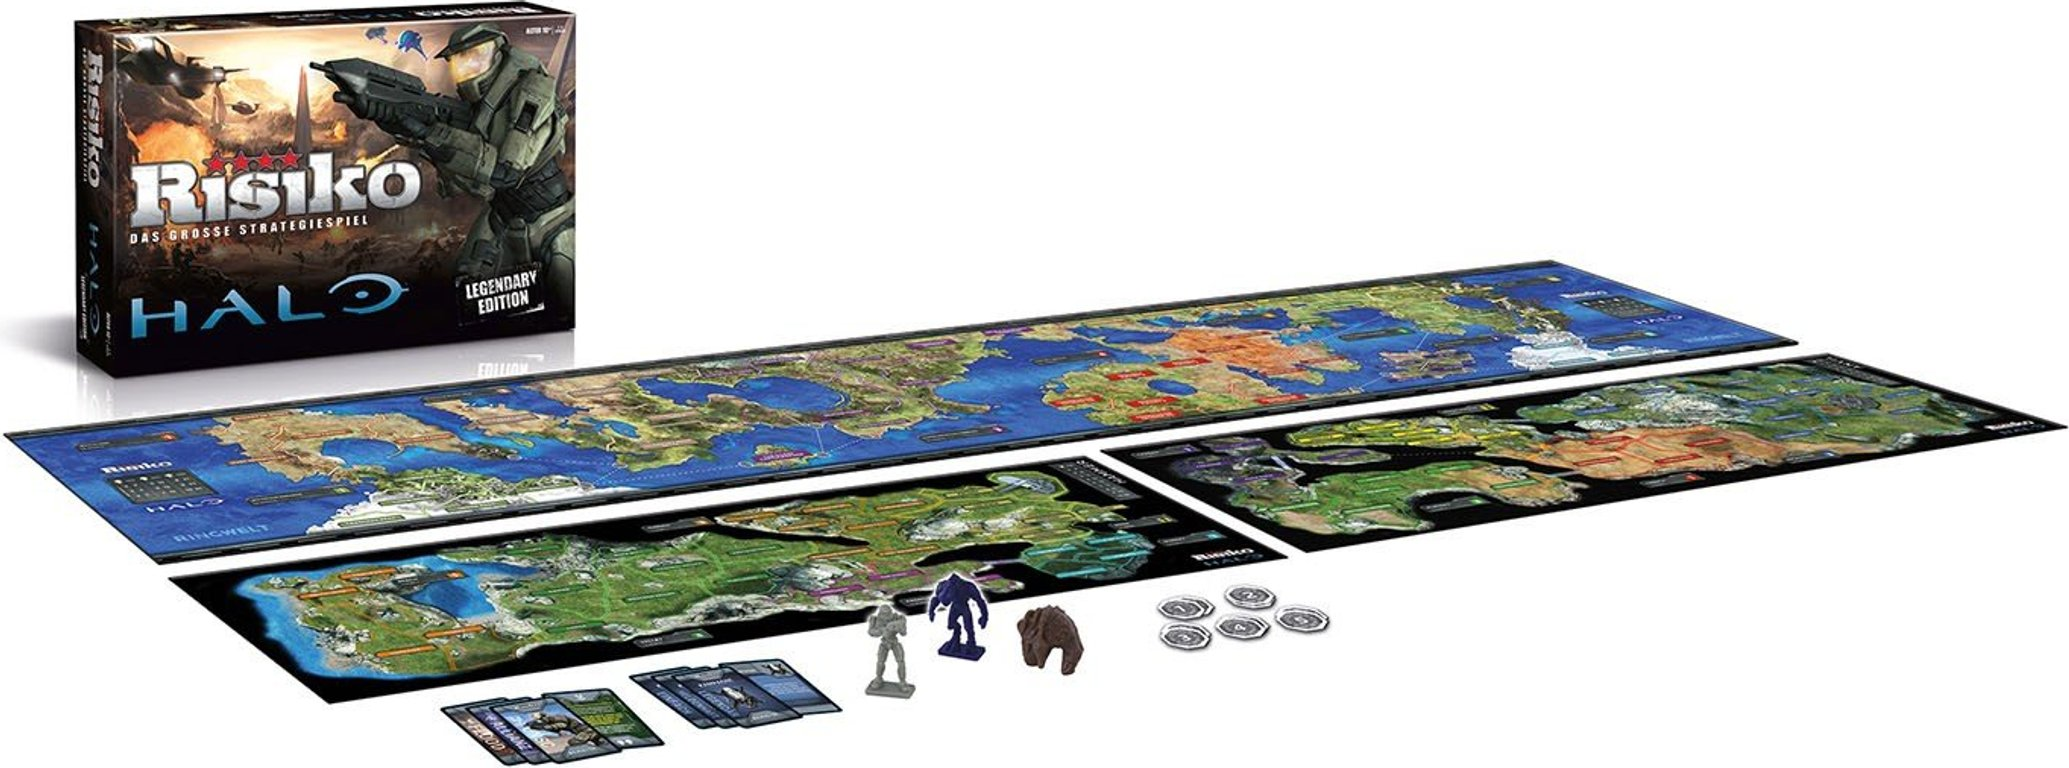 Risk: Halo Legendary Edition components